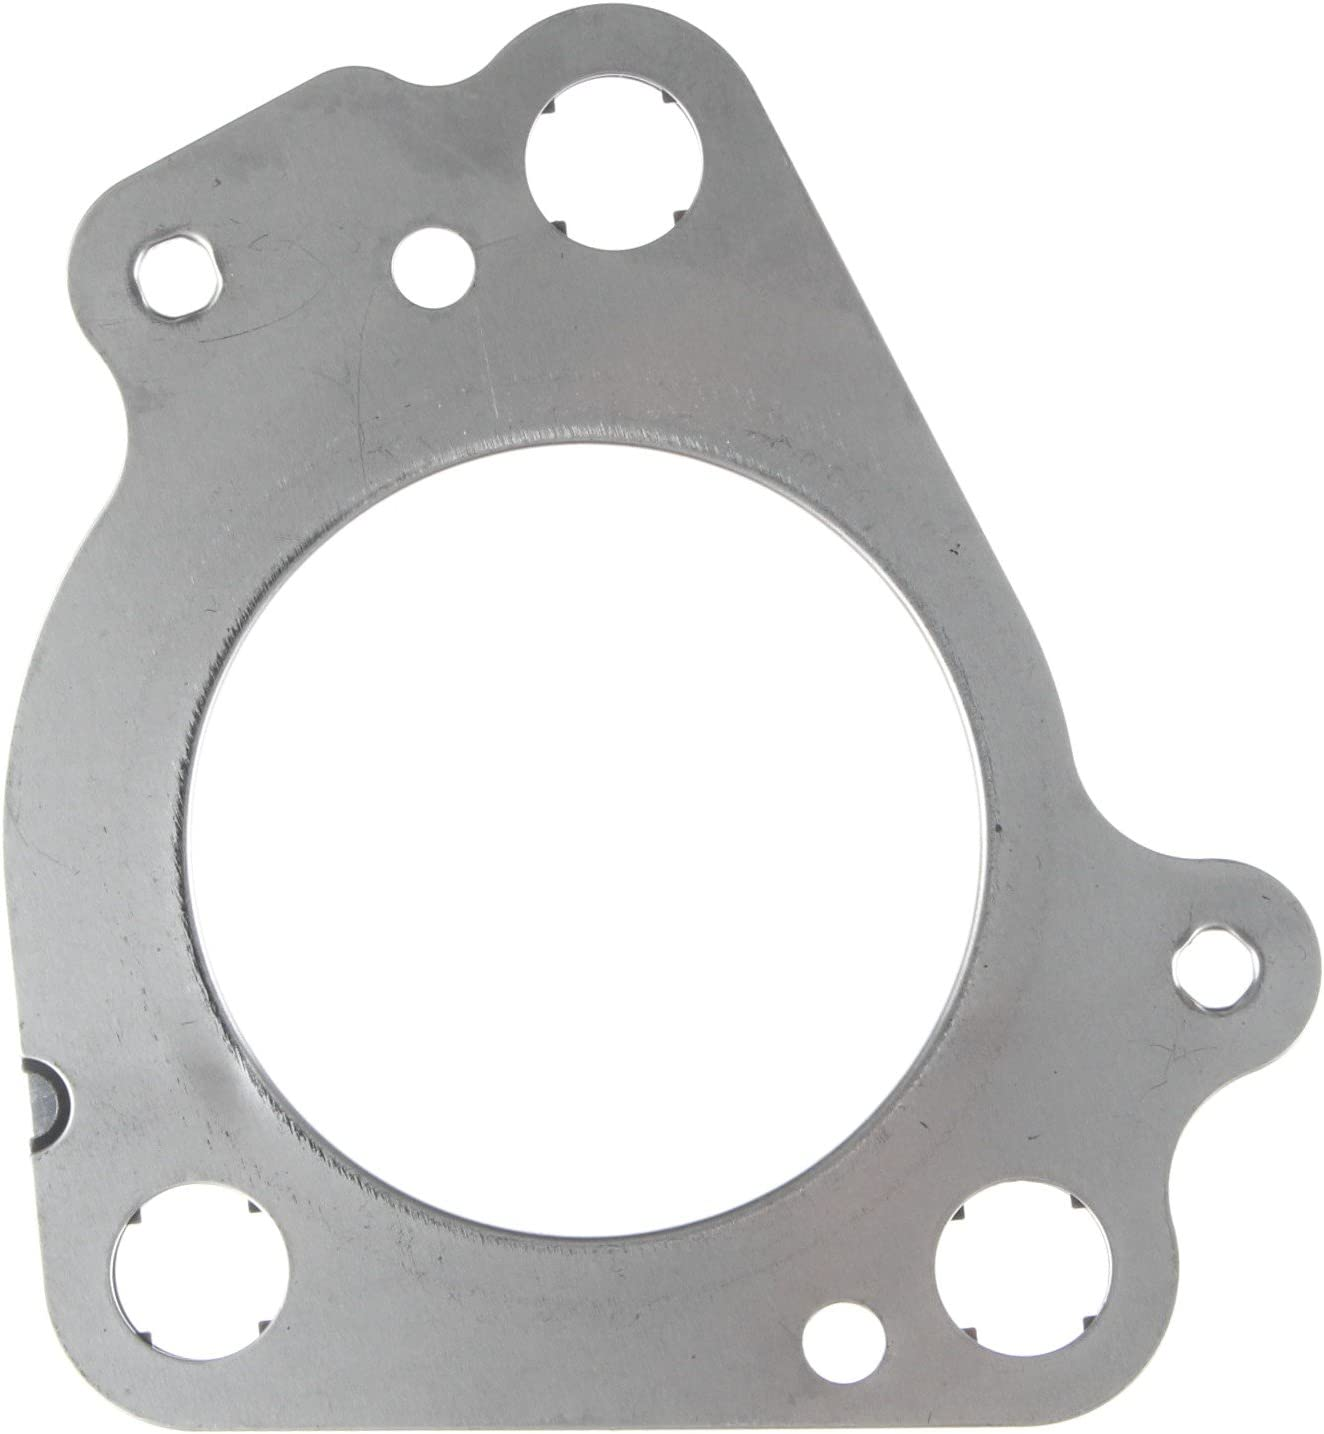 Max 84% OFF MAHLE F32918 favorite Turbocharger Gasket Inlet